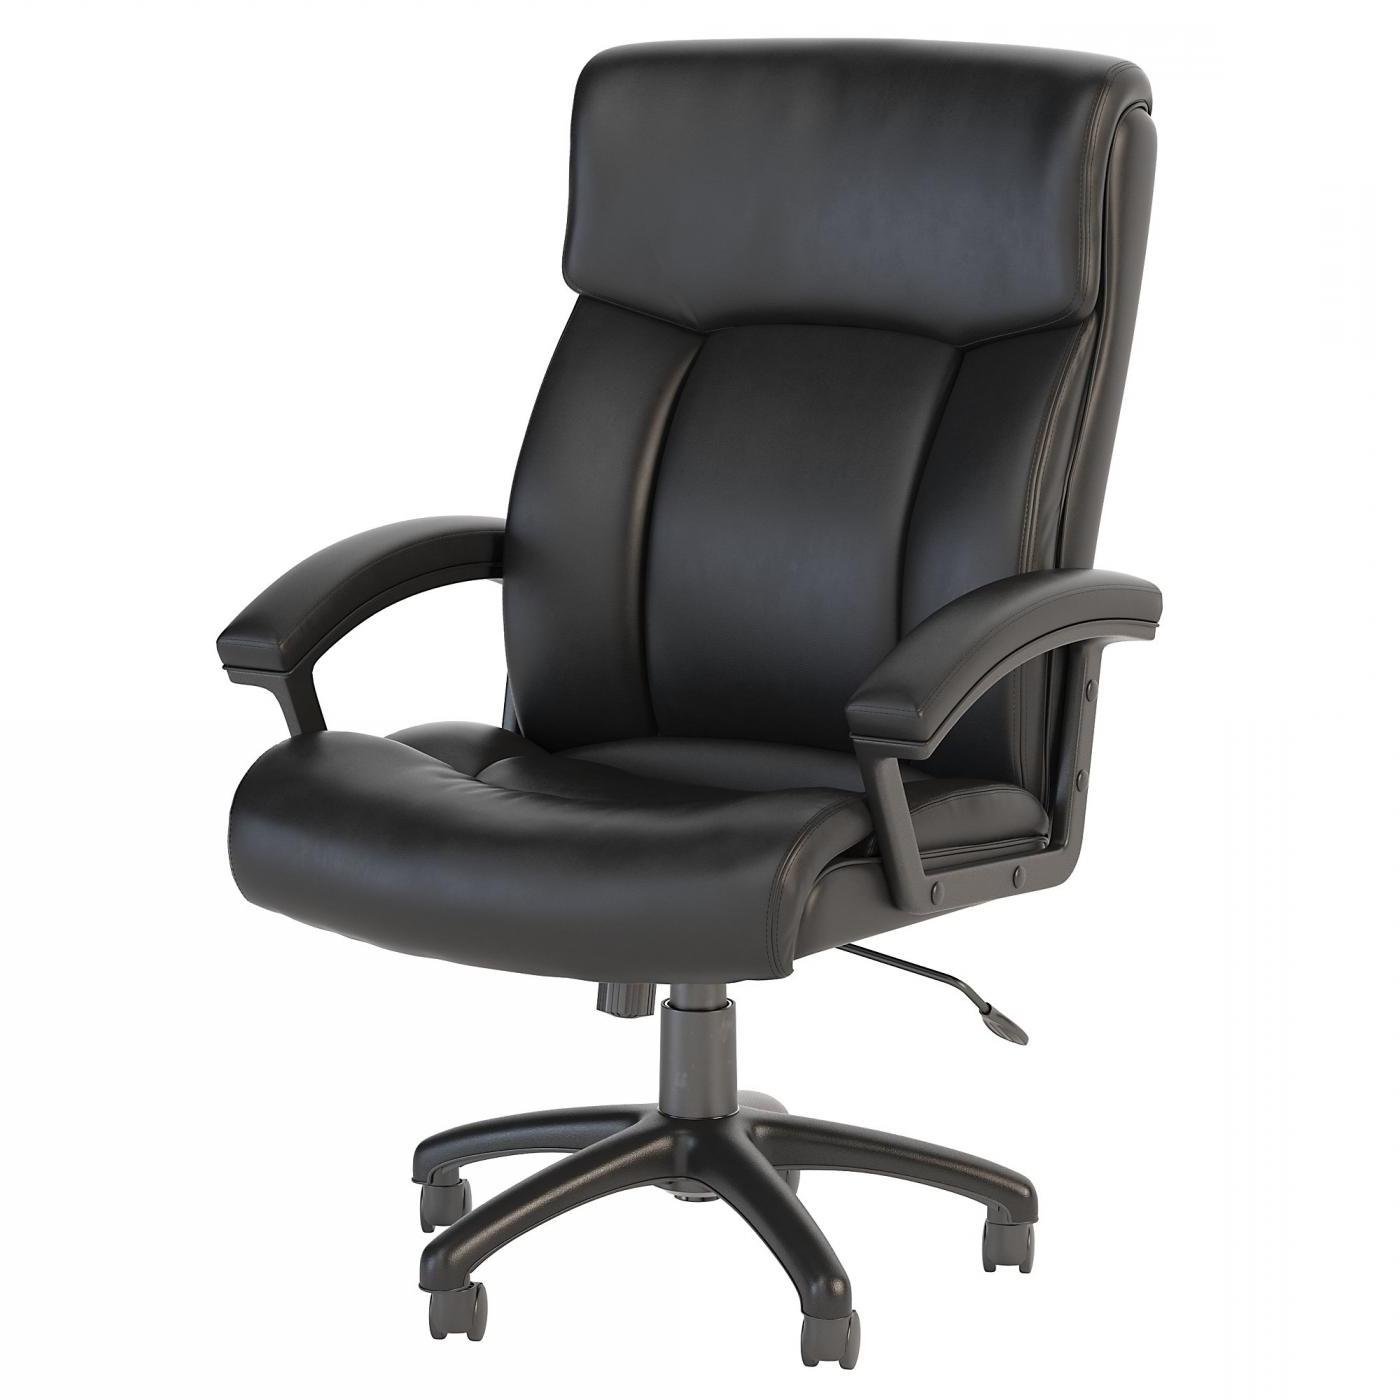 BUSH BUSINESS FURNITURE STANTON PLUS HIGH BACK LEATHER EXECUTIVE OFFICE CHAIR. FREE SHIPPING.  SALE DEDUCT 10% MORE ENTER '10percent' IN COUPON CODE BOX WHILE CHECKING OUT.